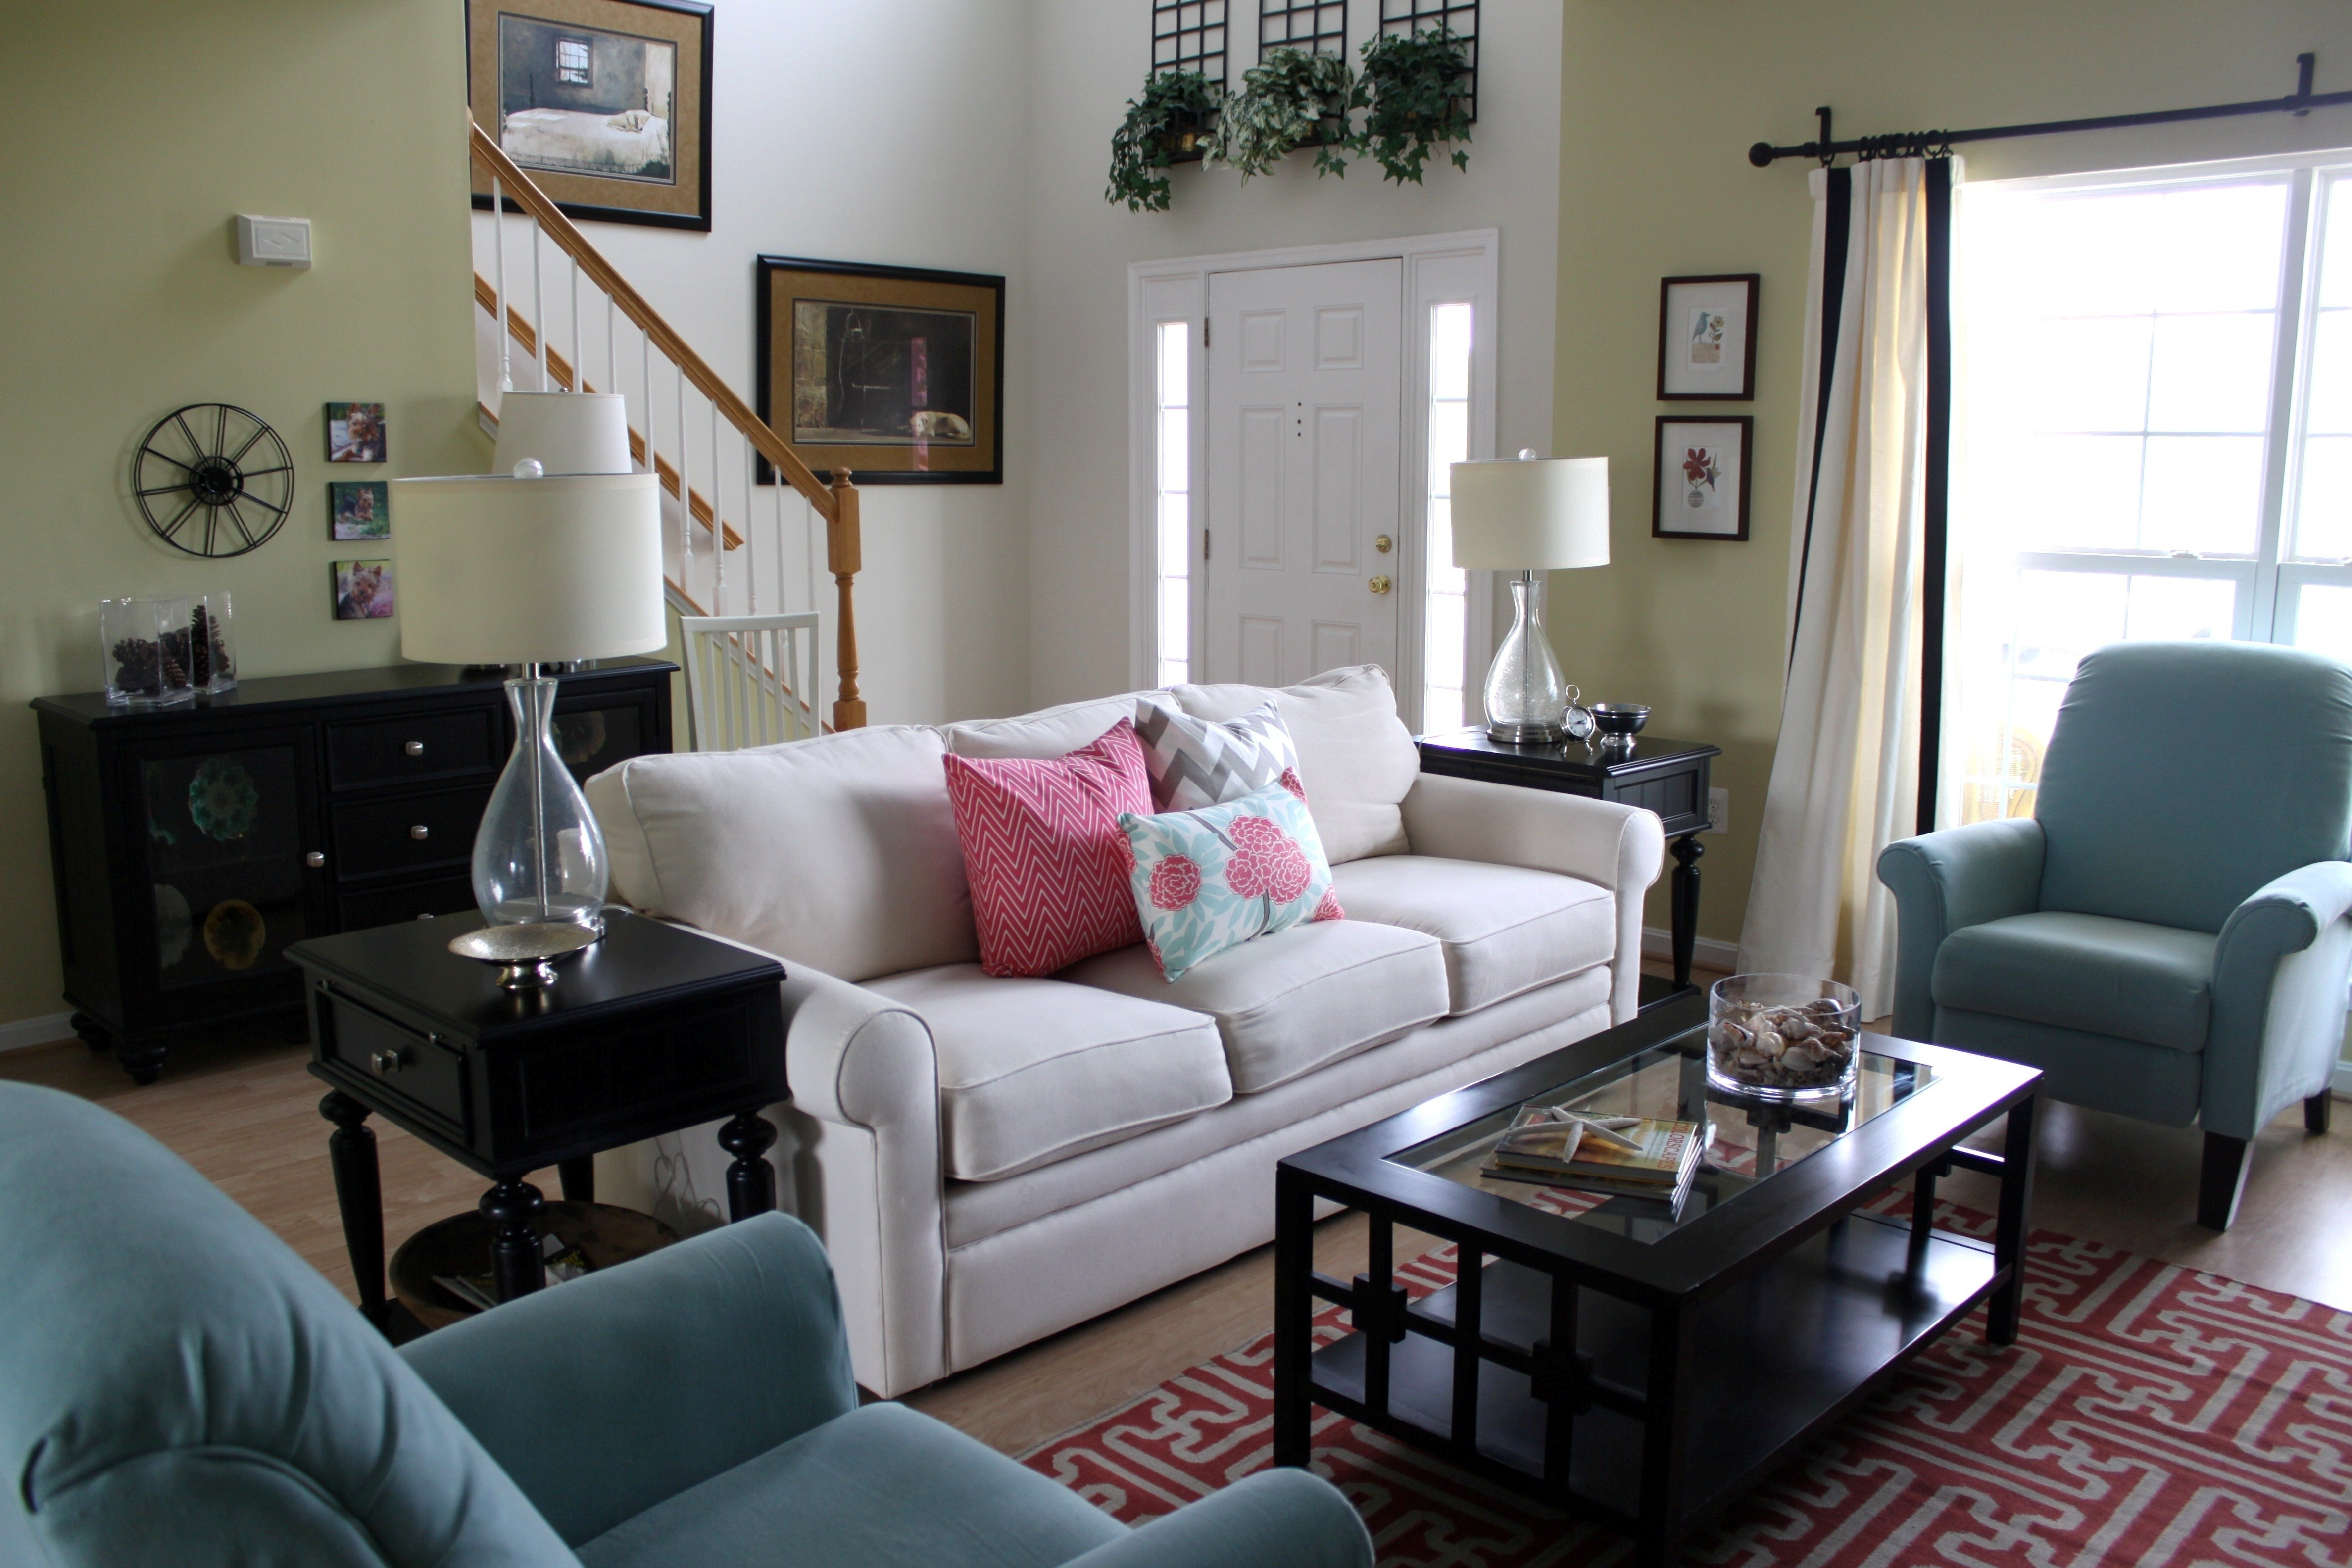 10 Ideal Small Living Room Decorating Ideas On A Budget small living room decorating ideas on a home inexpensive d cor 2020